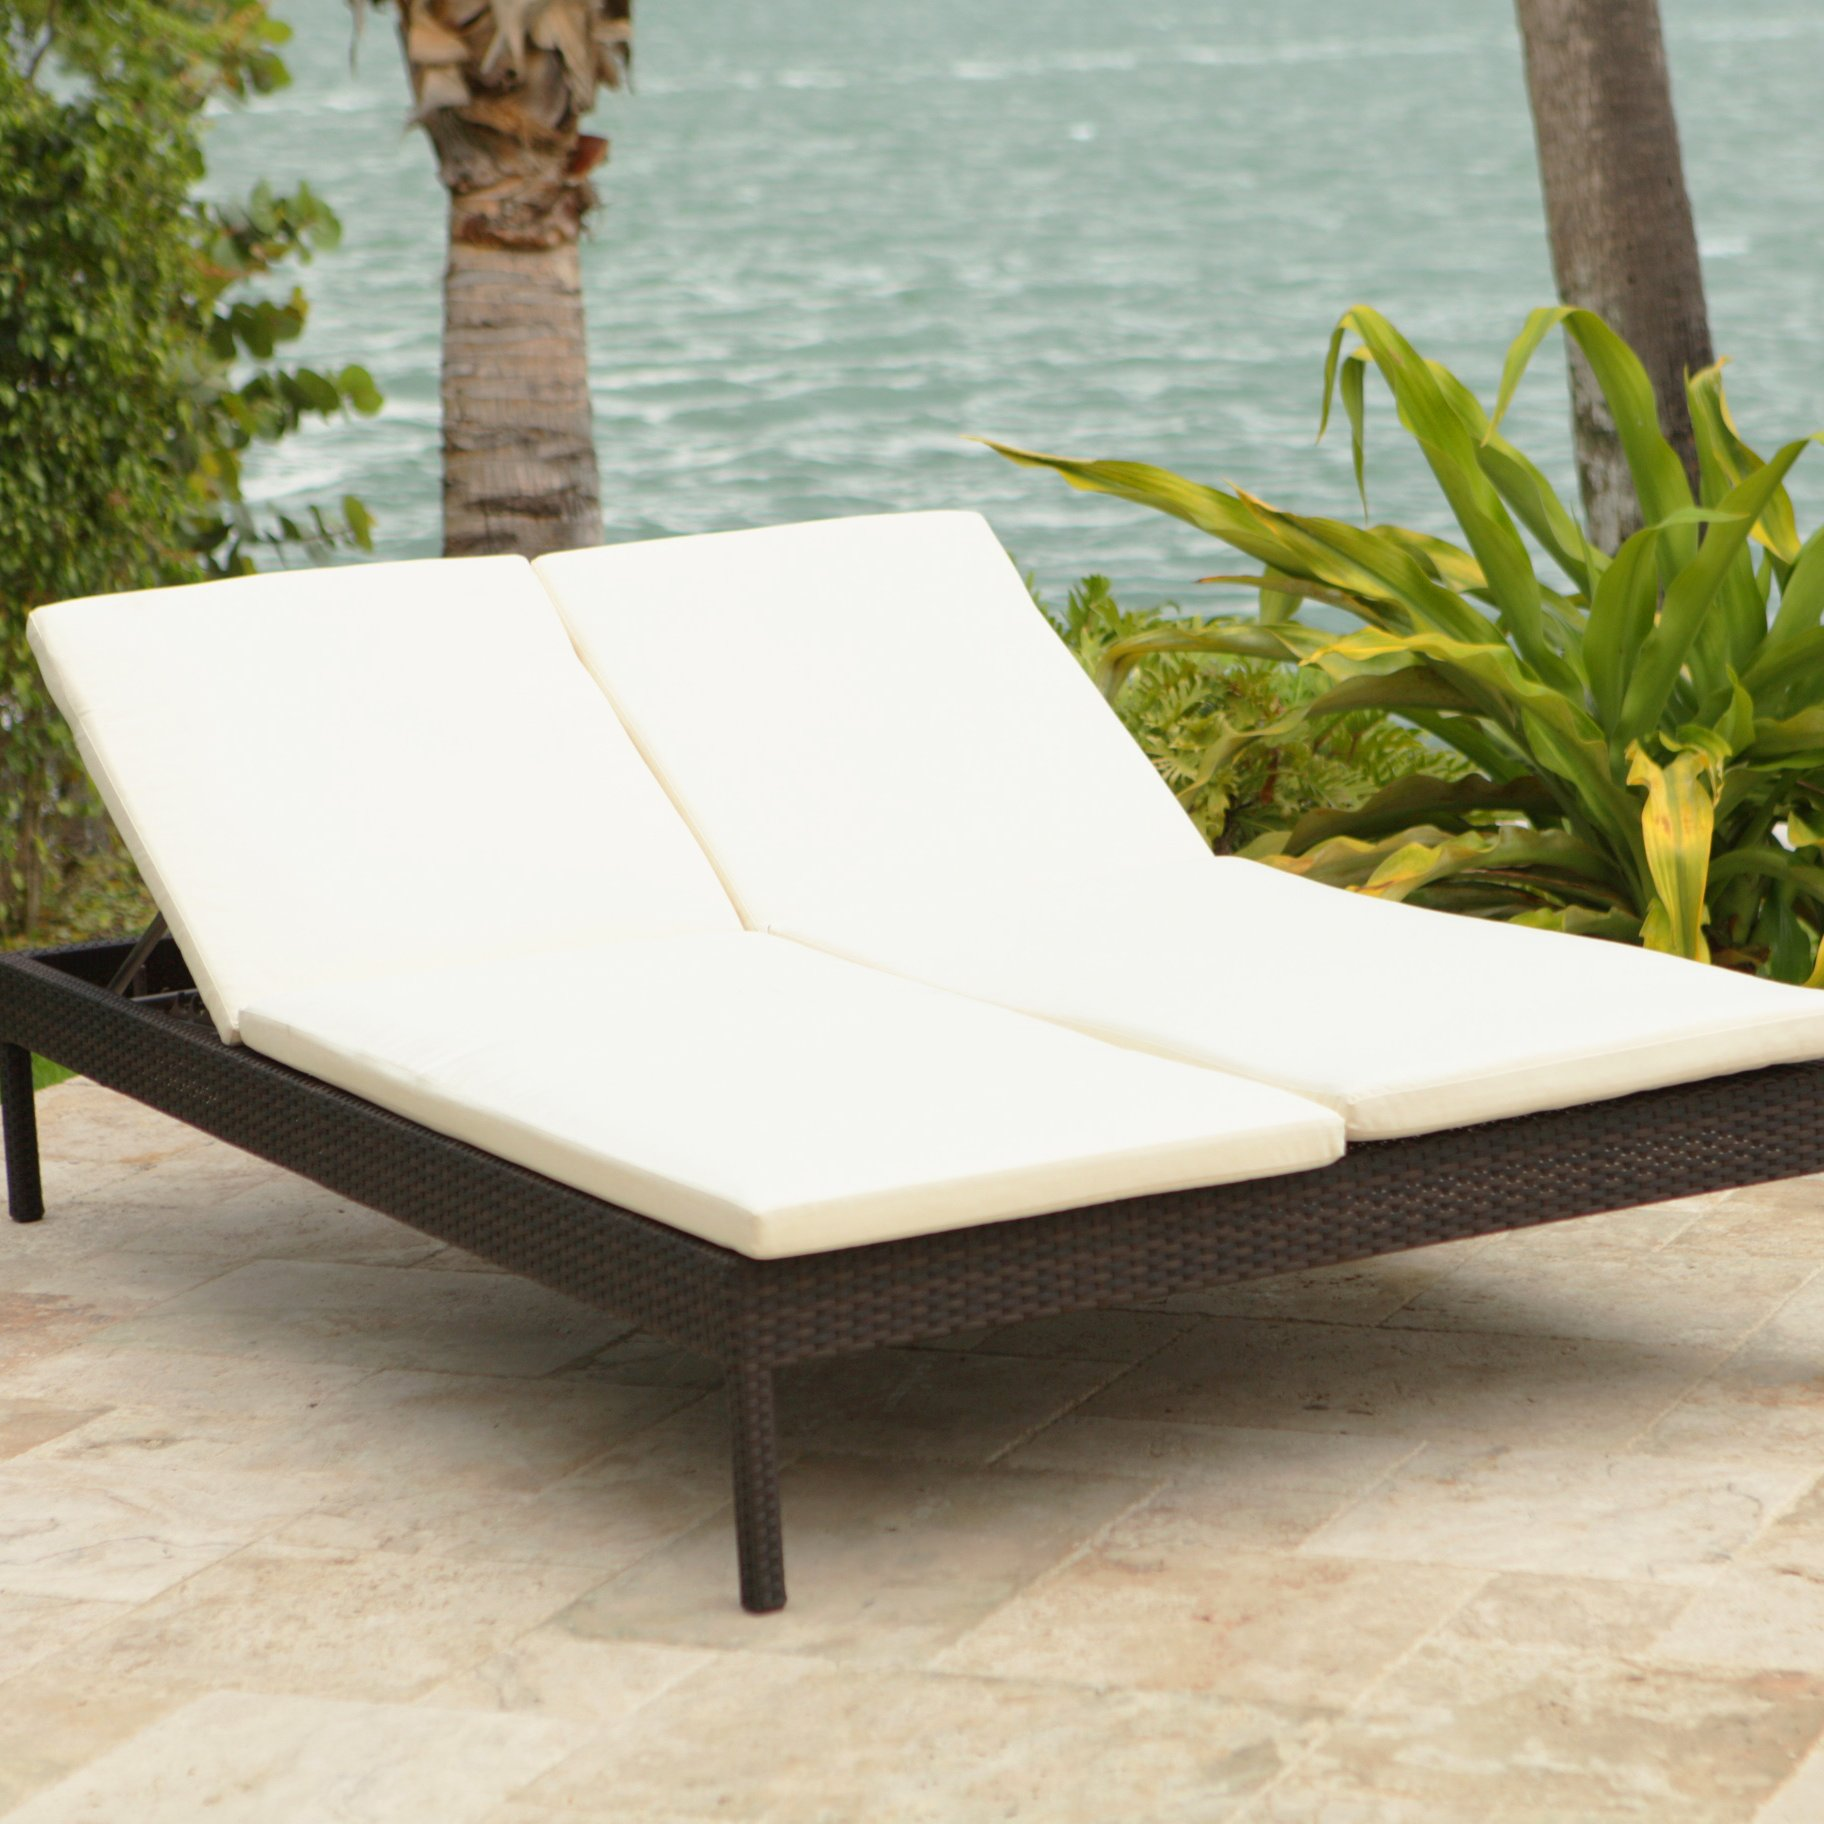 Amazing Brayden Studiou0026reg; Roque Double Chaise Lounge with Cushion double chaise lounge outdoor